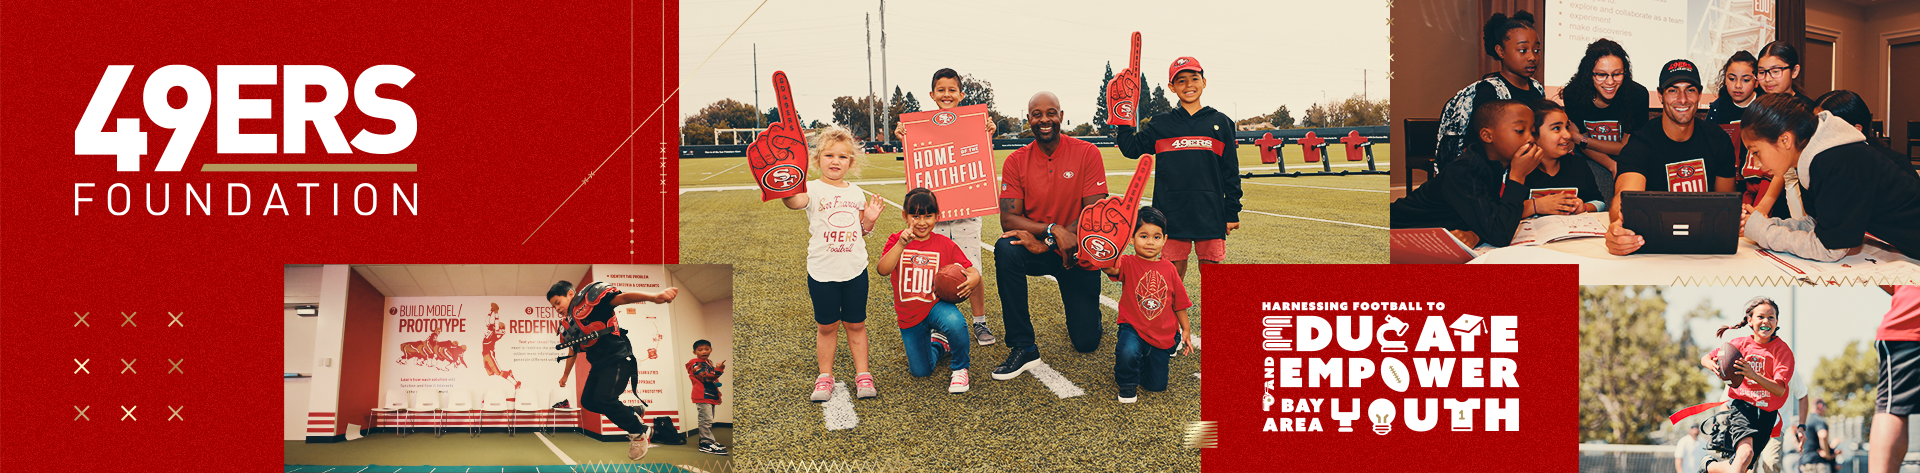 0714-1-49ers-Foundation-Site-Update_Banner_v3